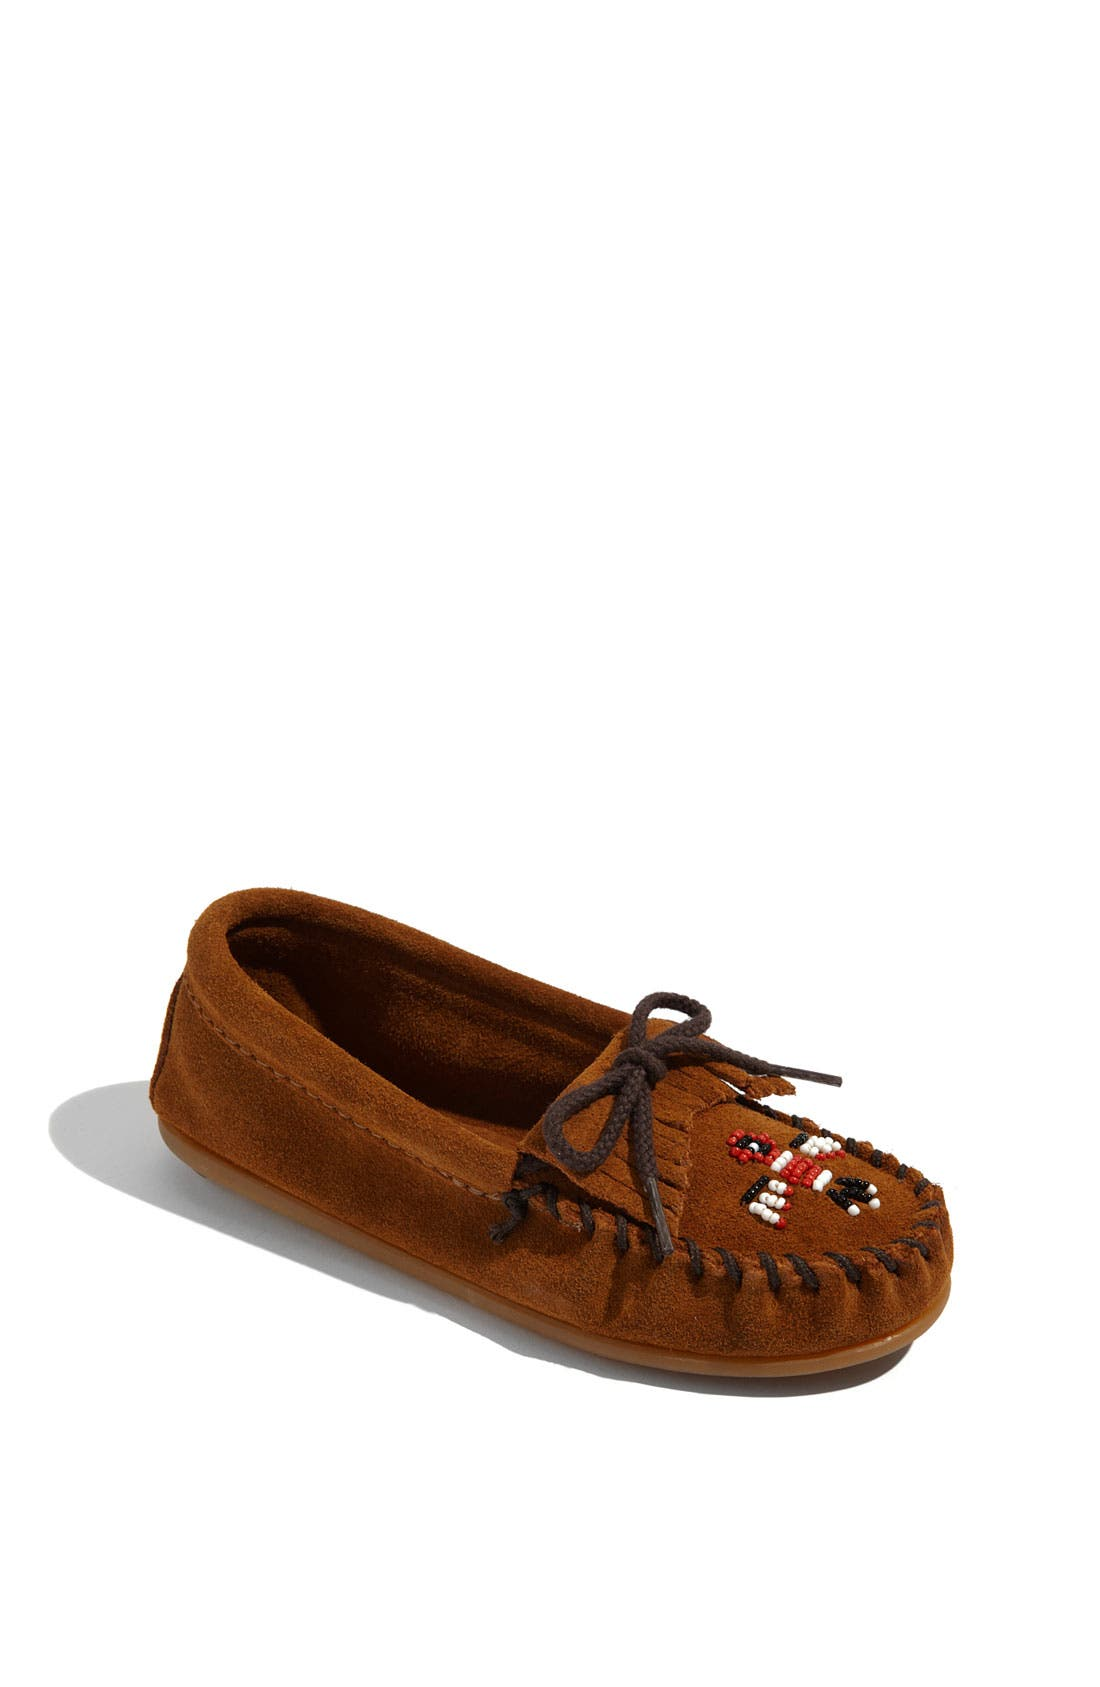 Minnetonka 'Thunderbird' Moccasin (Toddler, Little Kid & Big Kid)